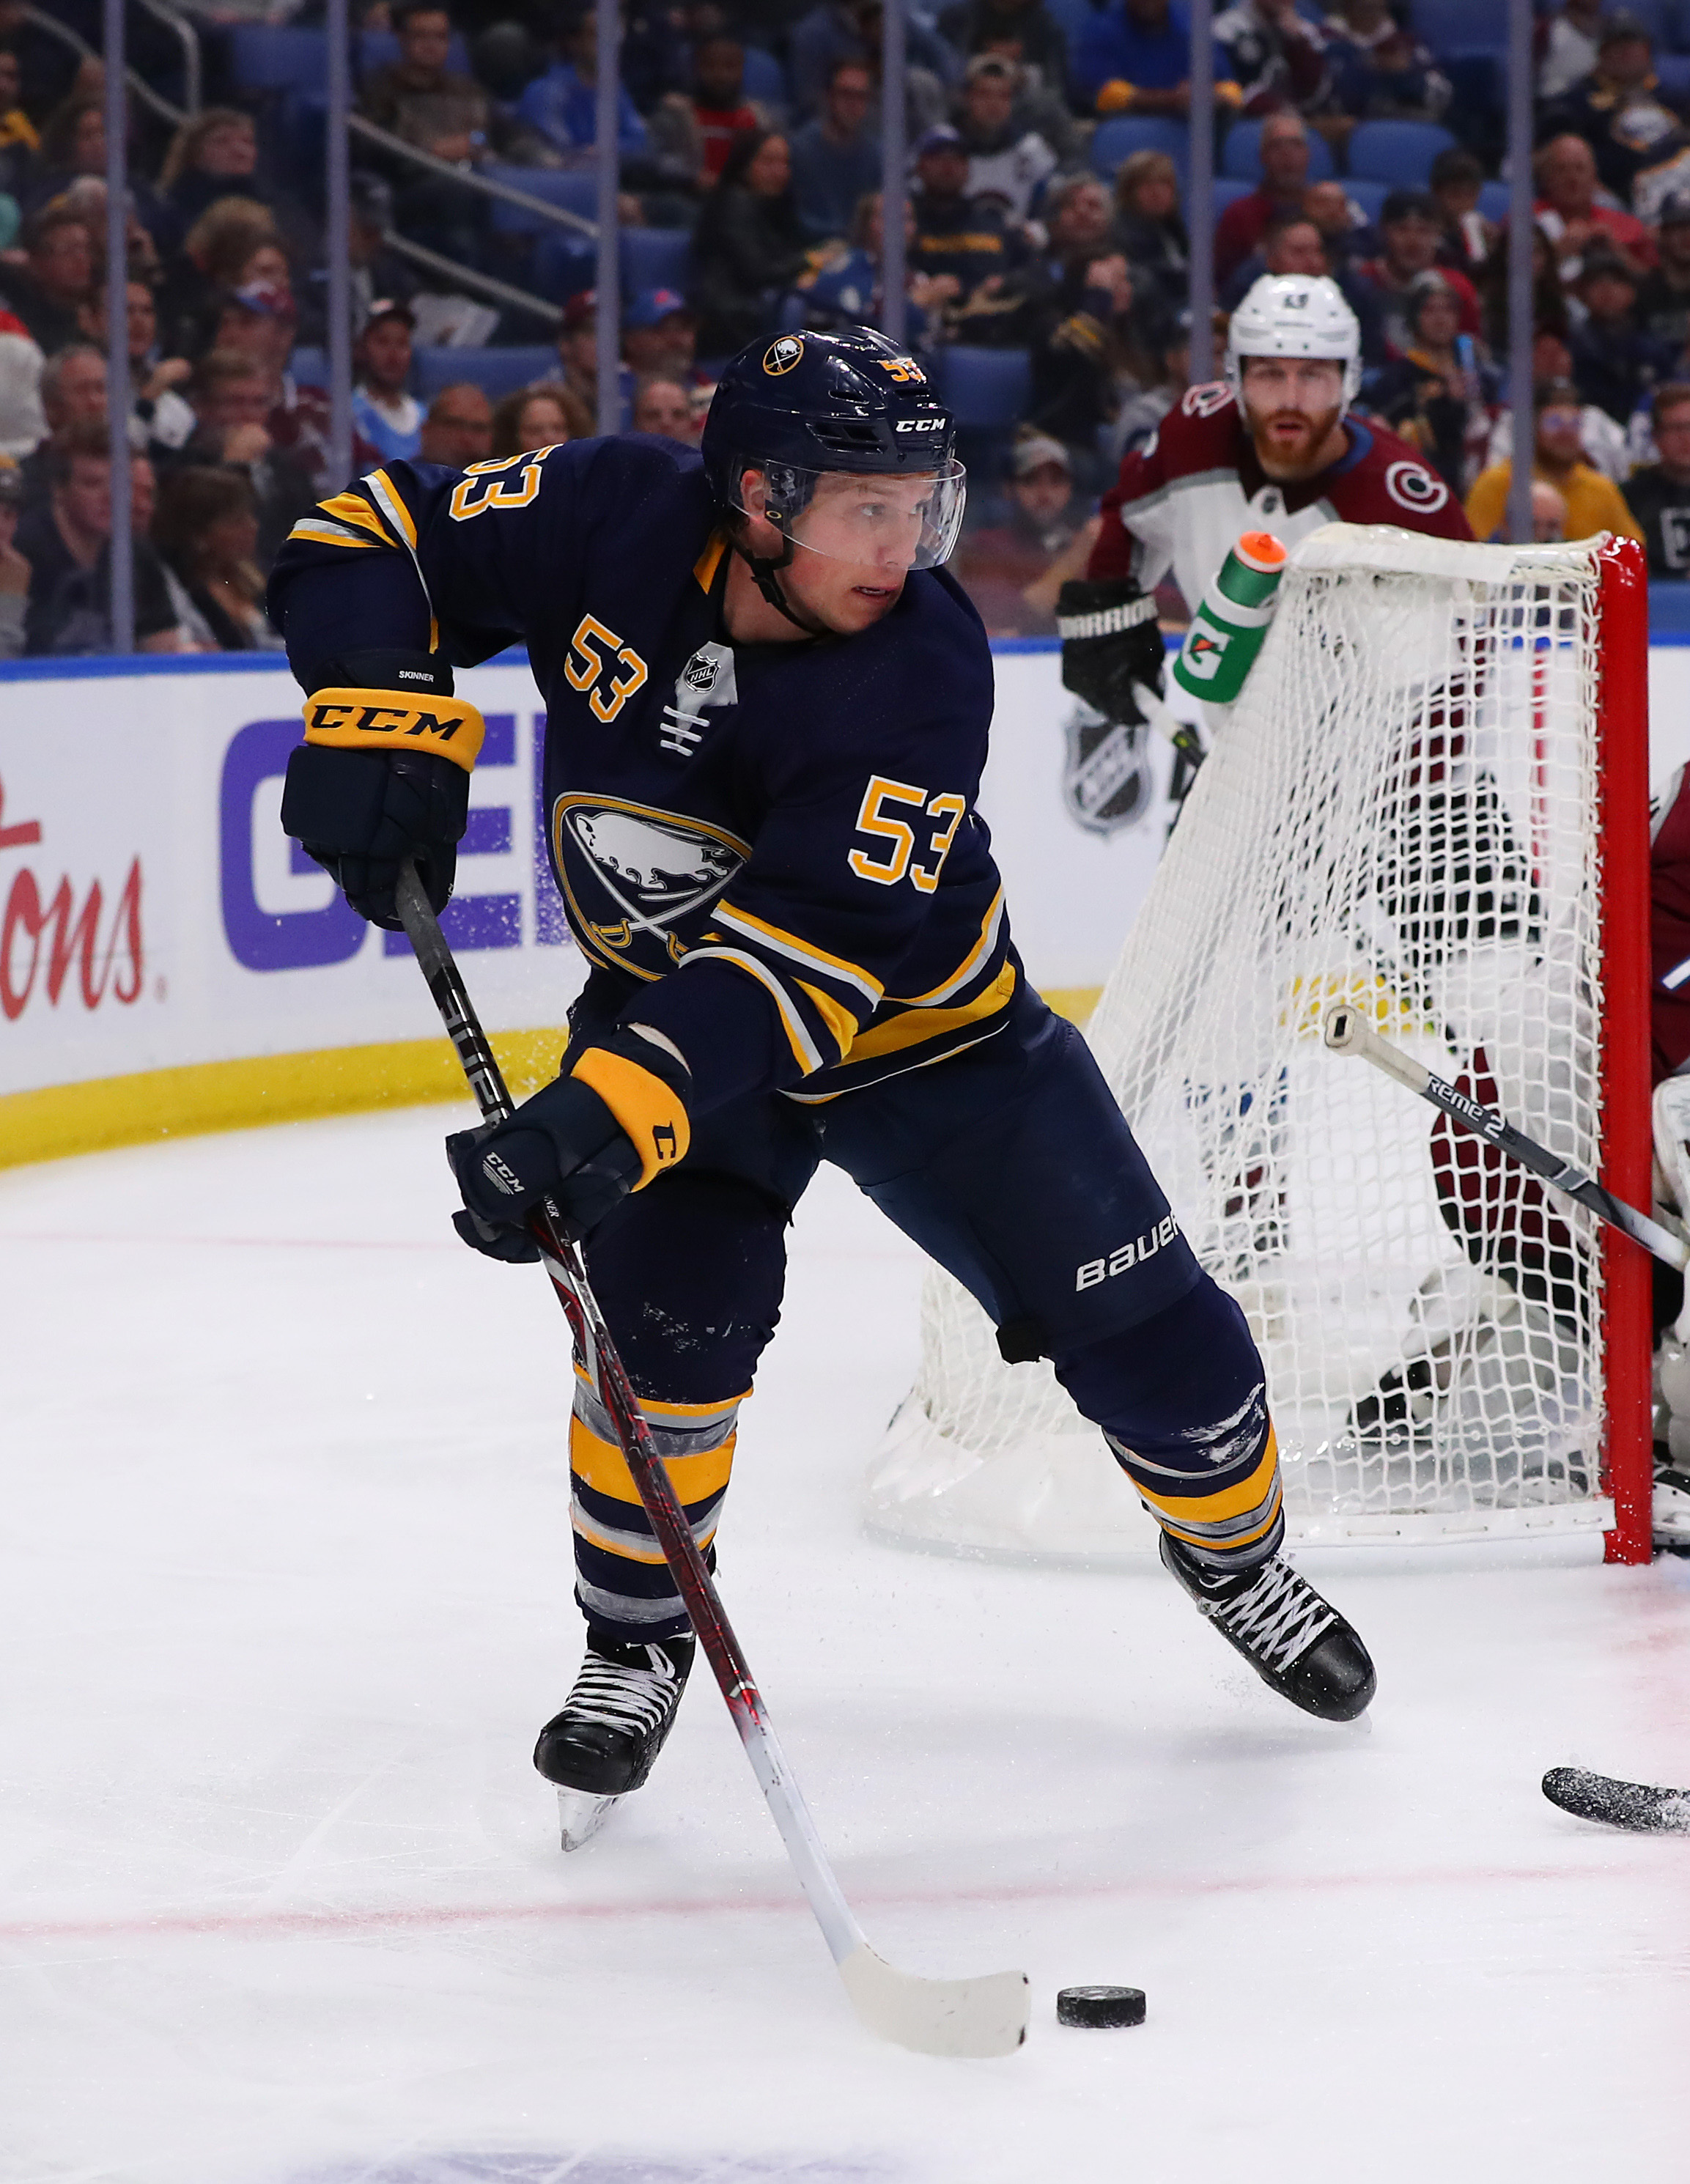 sale retailer 8b5d4 bb6a5 Buffalo Sabres Expected To Start Negotiations With Jeff ...